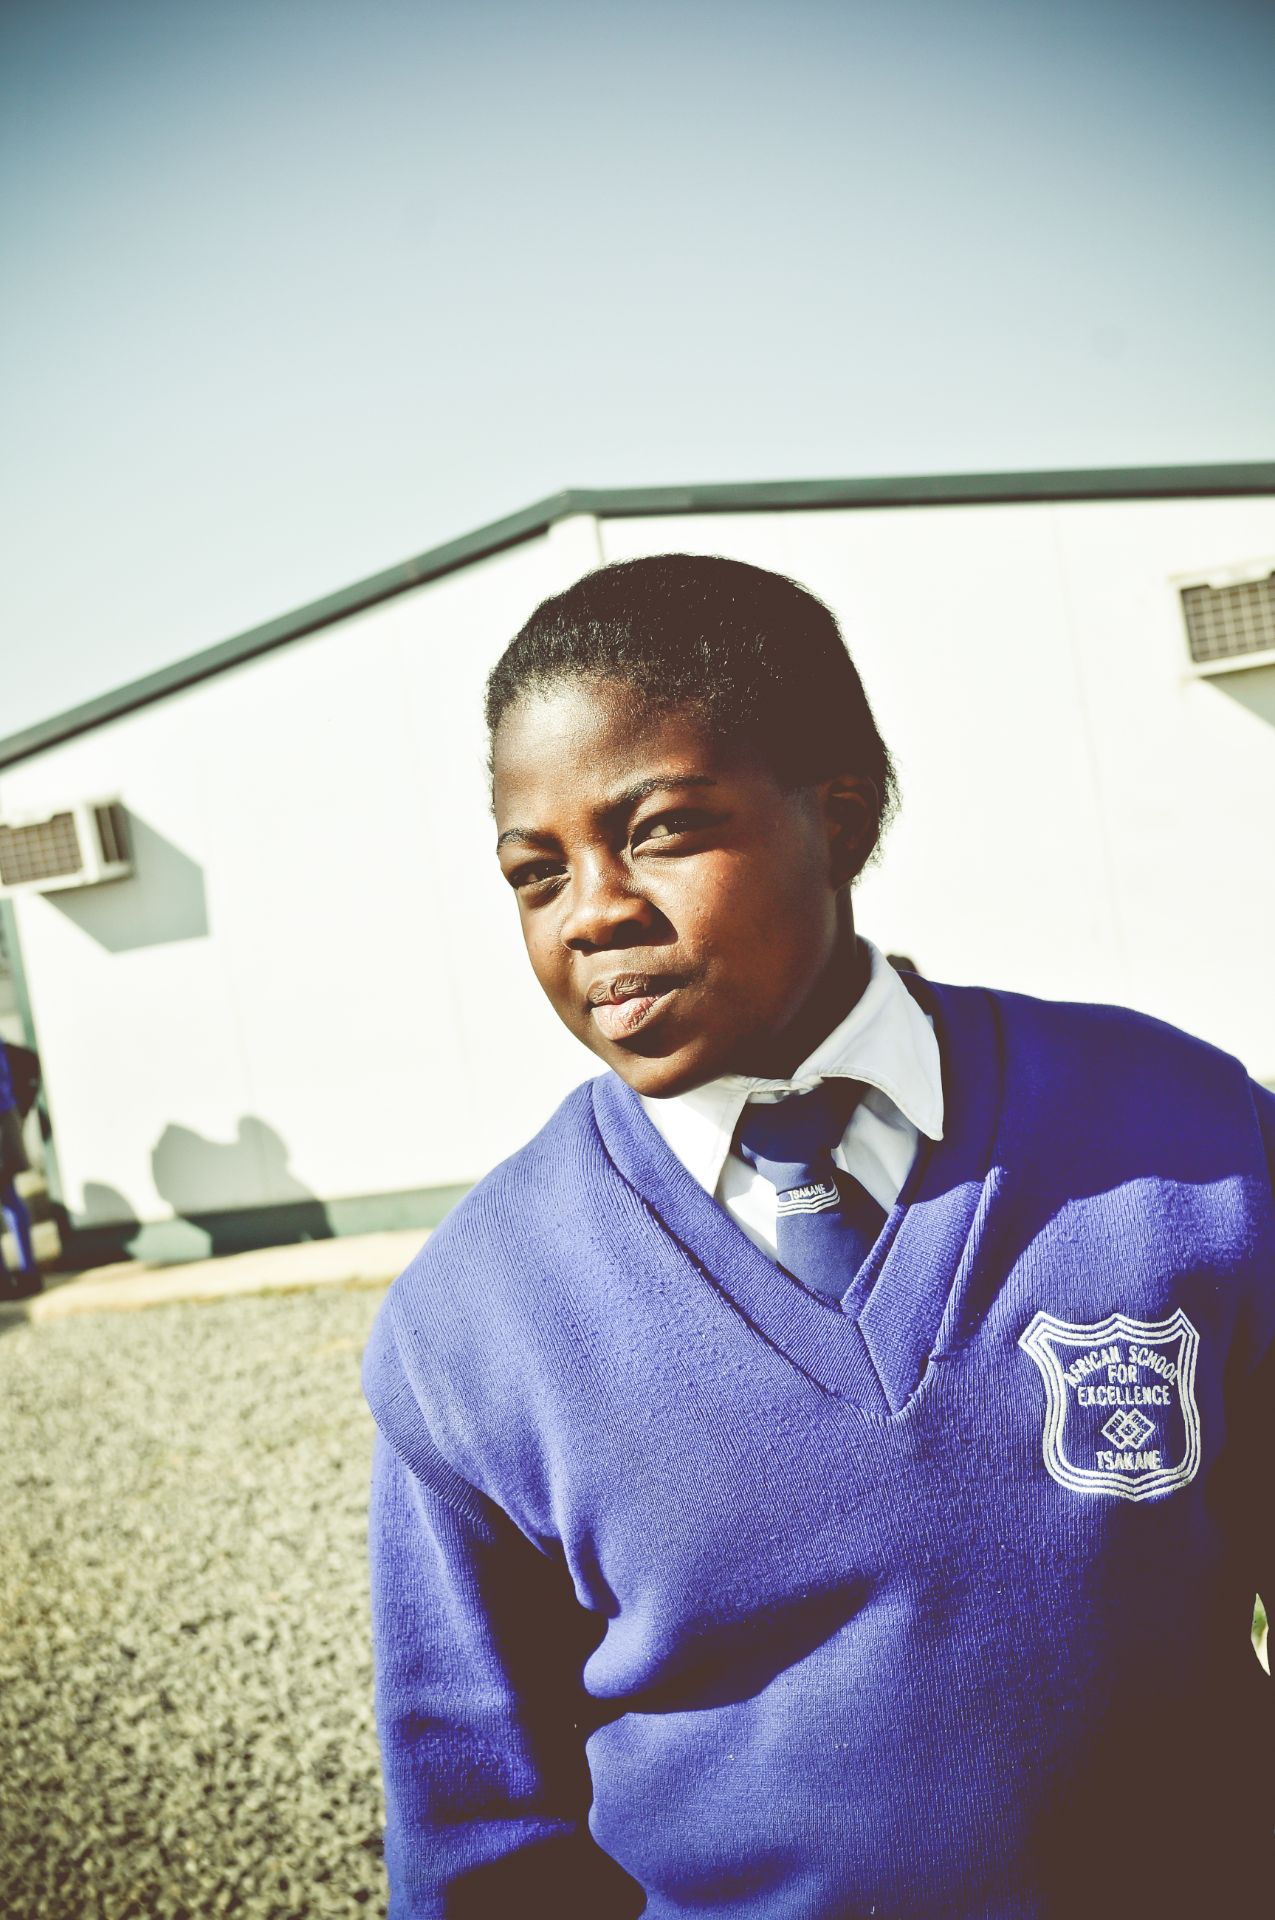 African Scool of Excellence Photos 764